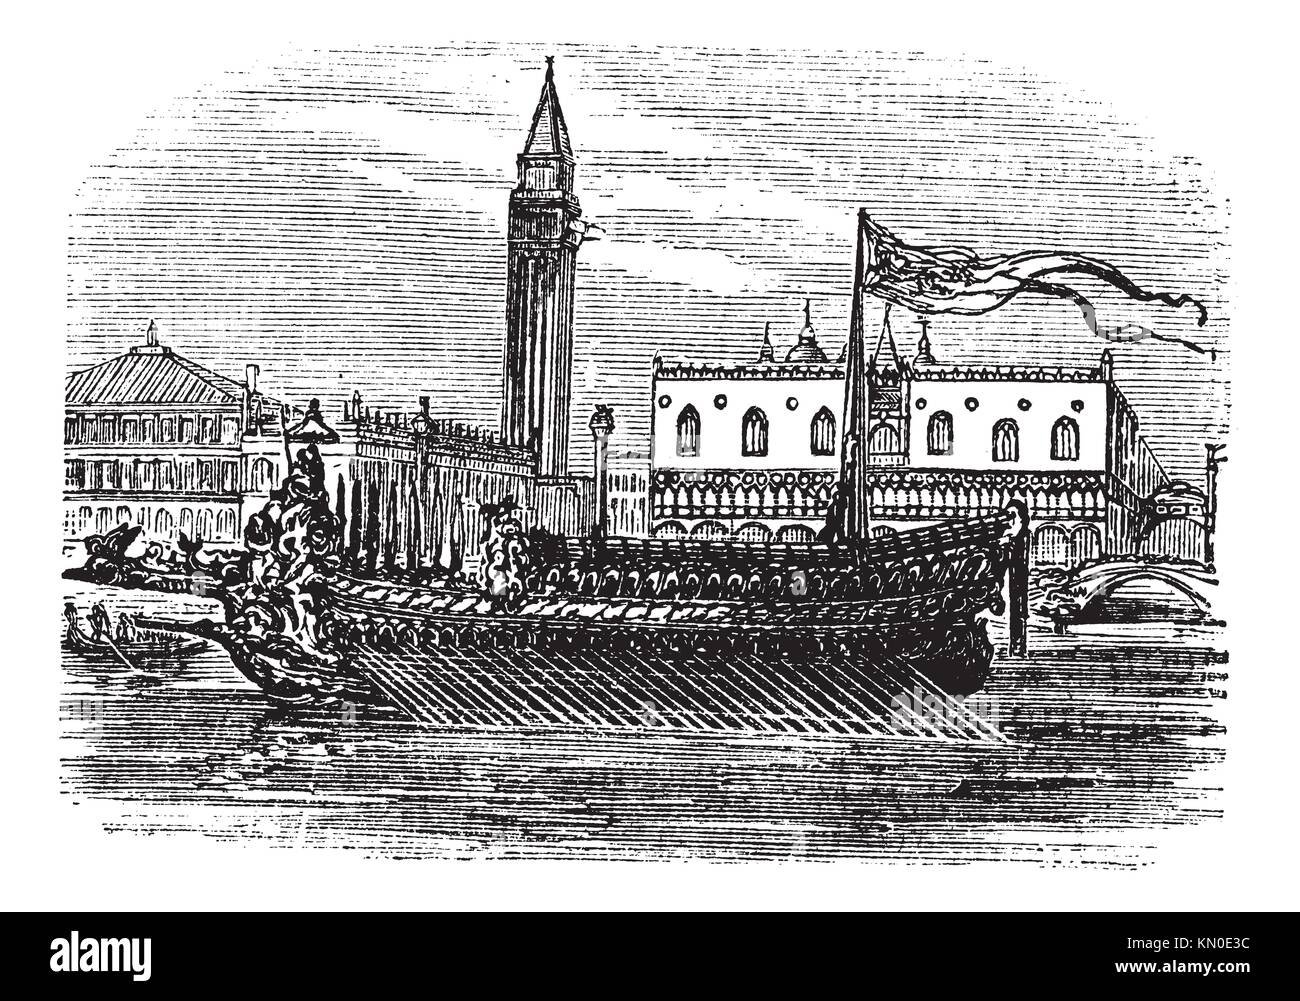 Bucentaur, galley, doges of Venice, old engraved illustration of Bucentaur, galley, doges of Venice, 1890s - Stock Image